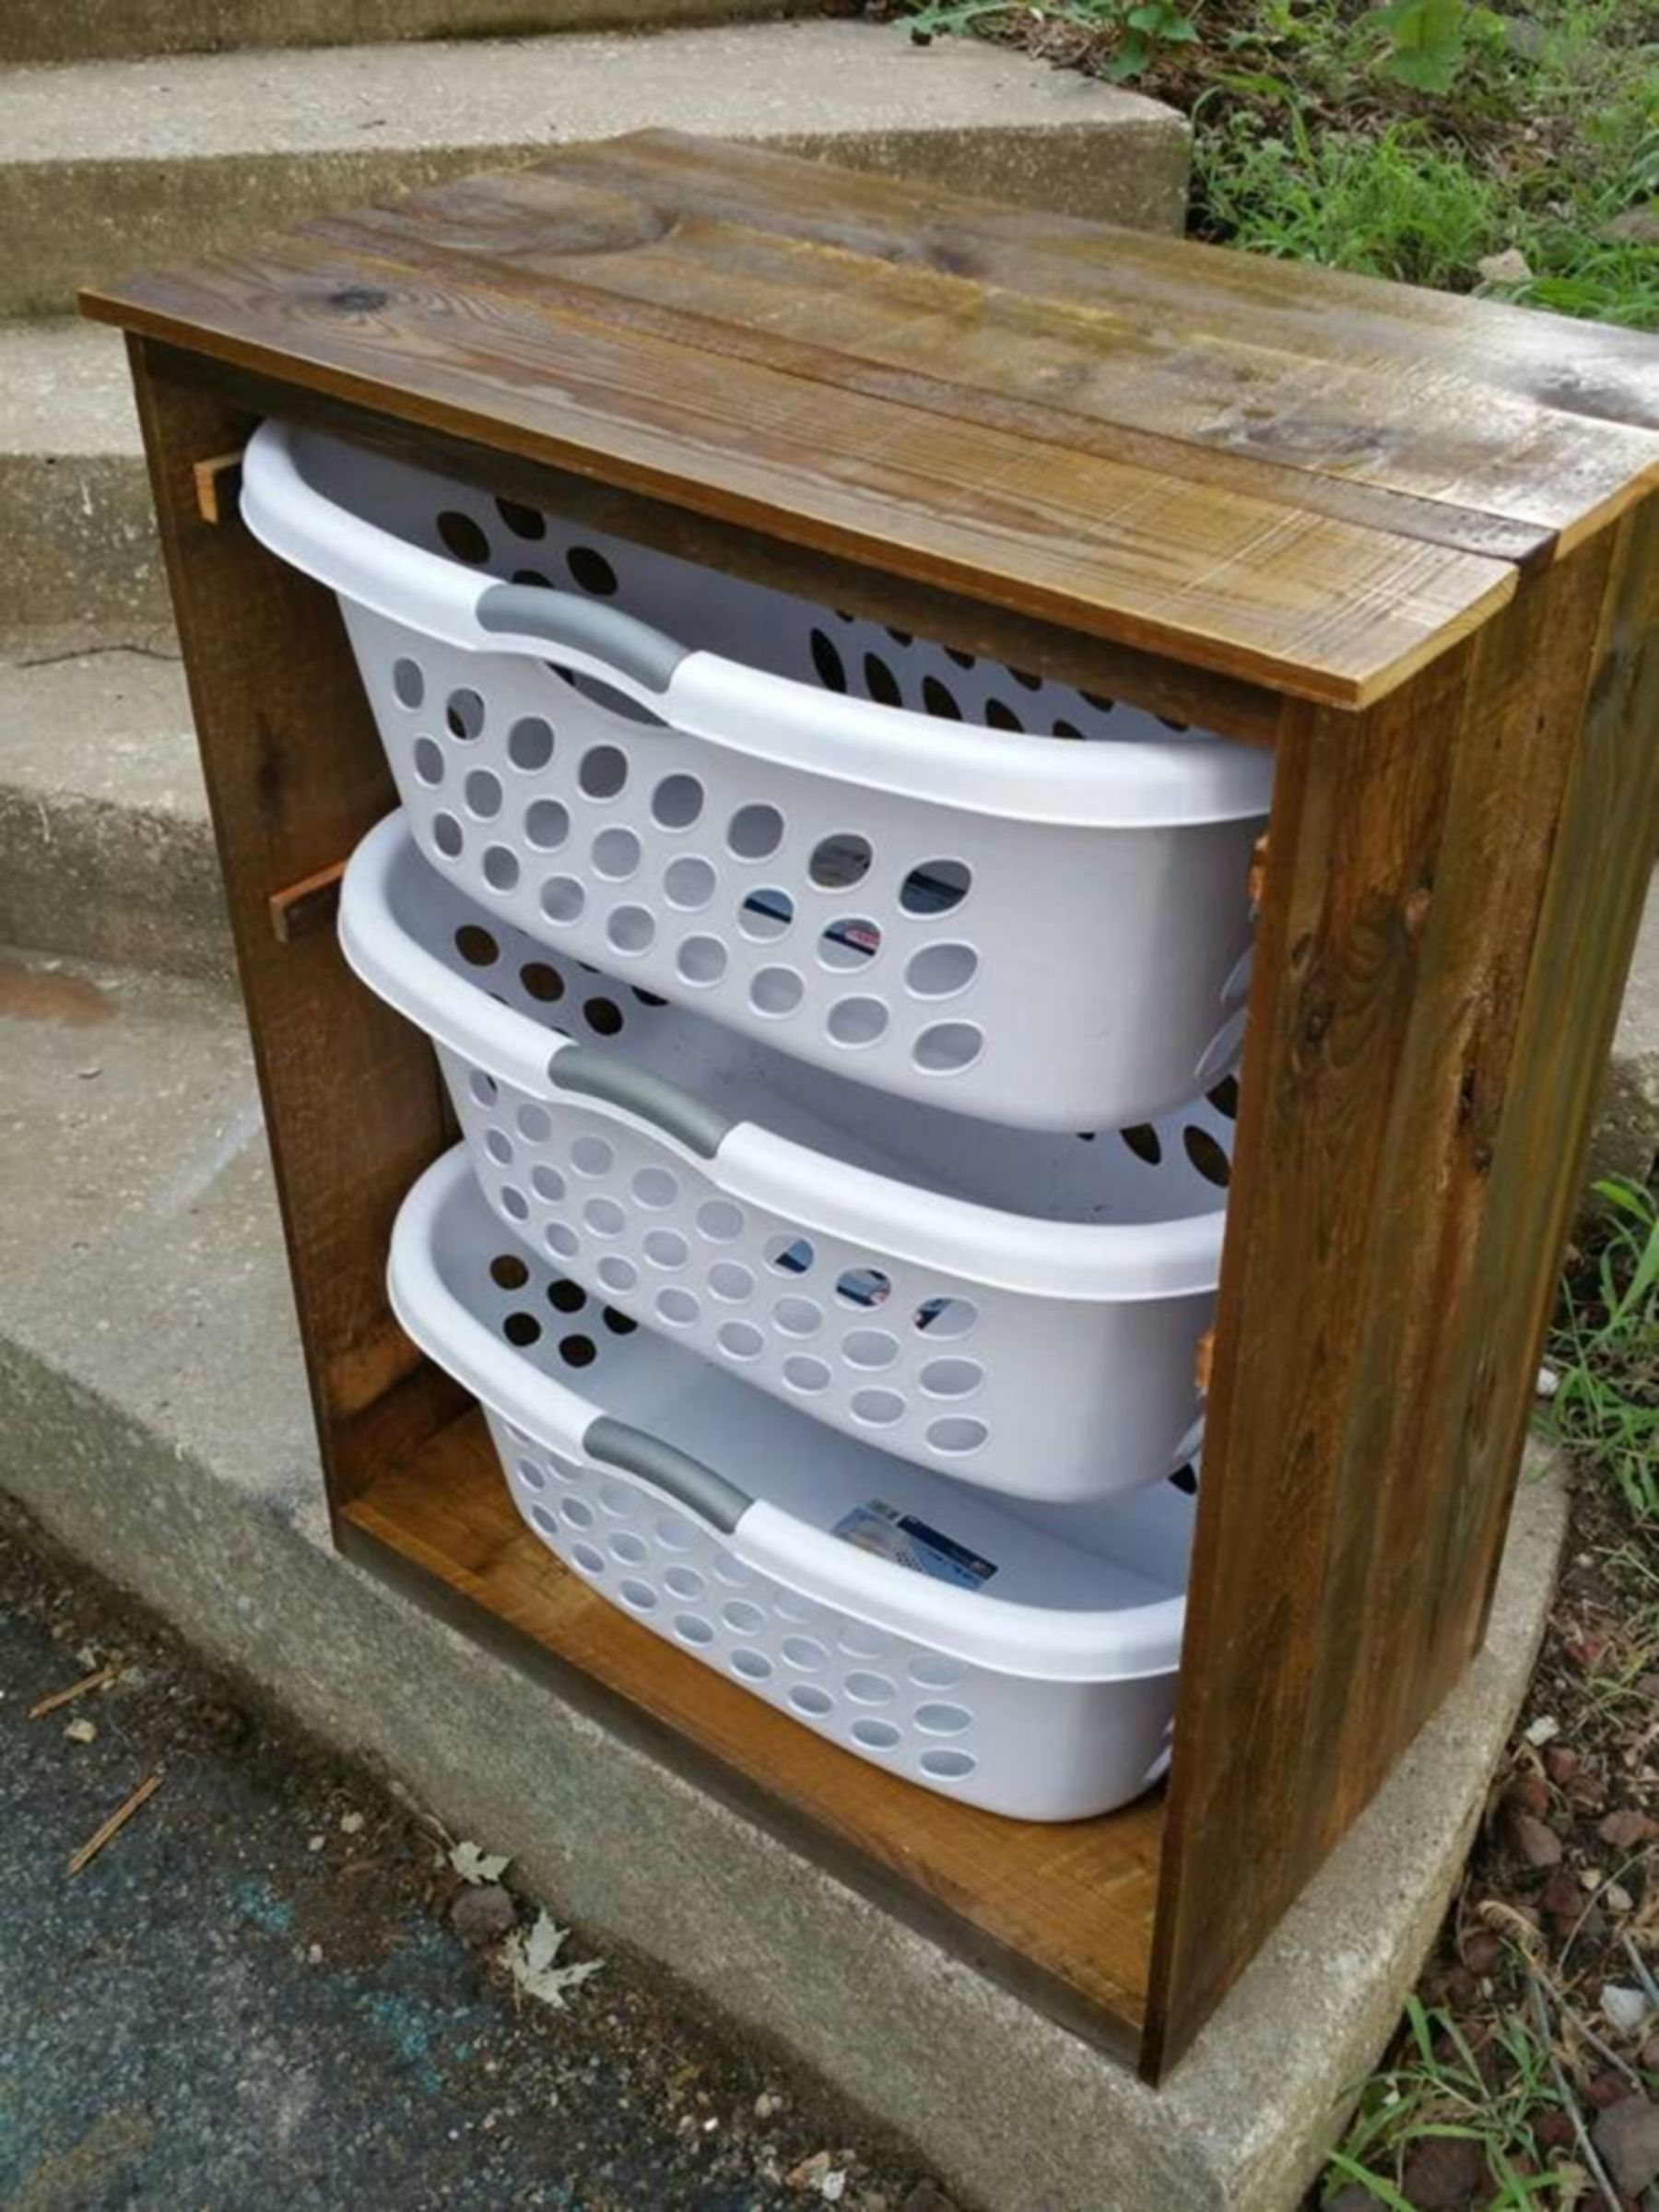 Interesting 15 Pallet Laundry Basket Holder Ideas For Easy And Simple Room Storage Diy Laundry Basket Holder Laundry Room Decor